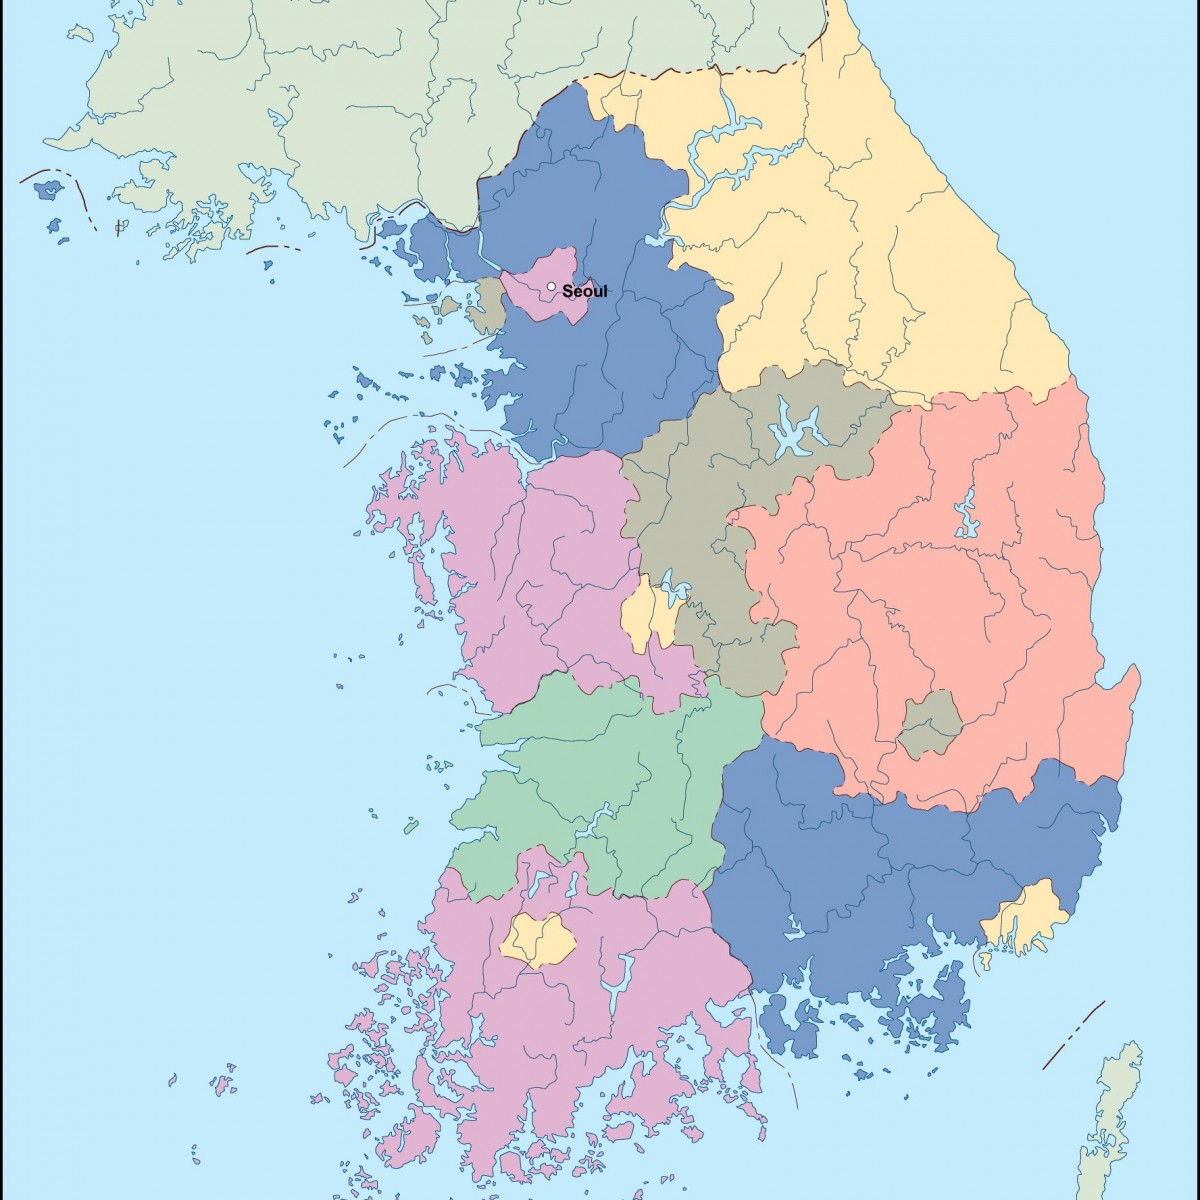 South Korea Vector Map Order And Download South Korea Vector Map - South korea map vector